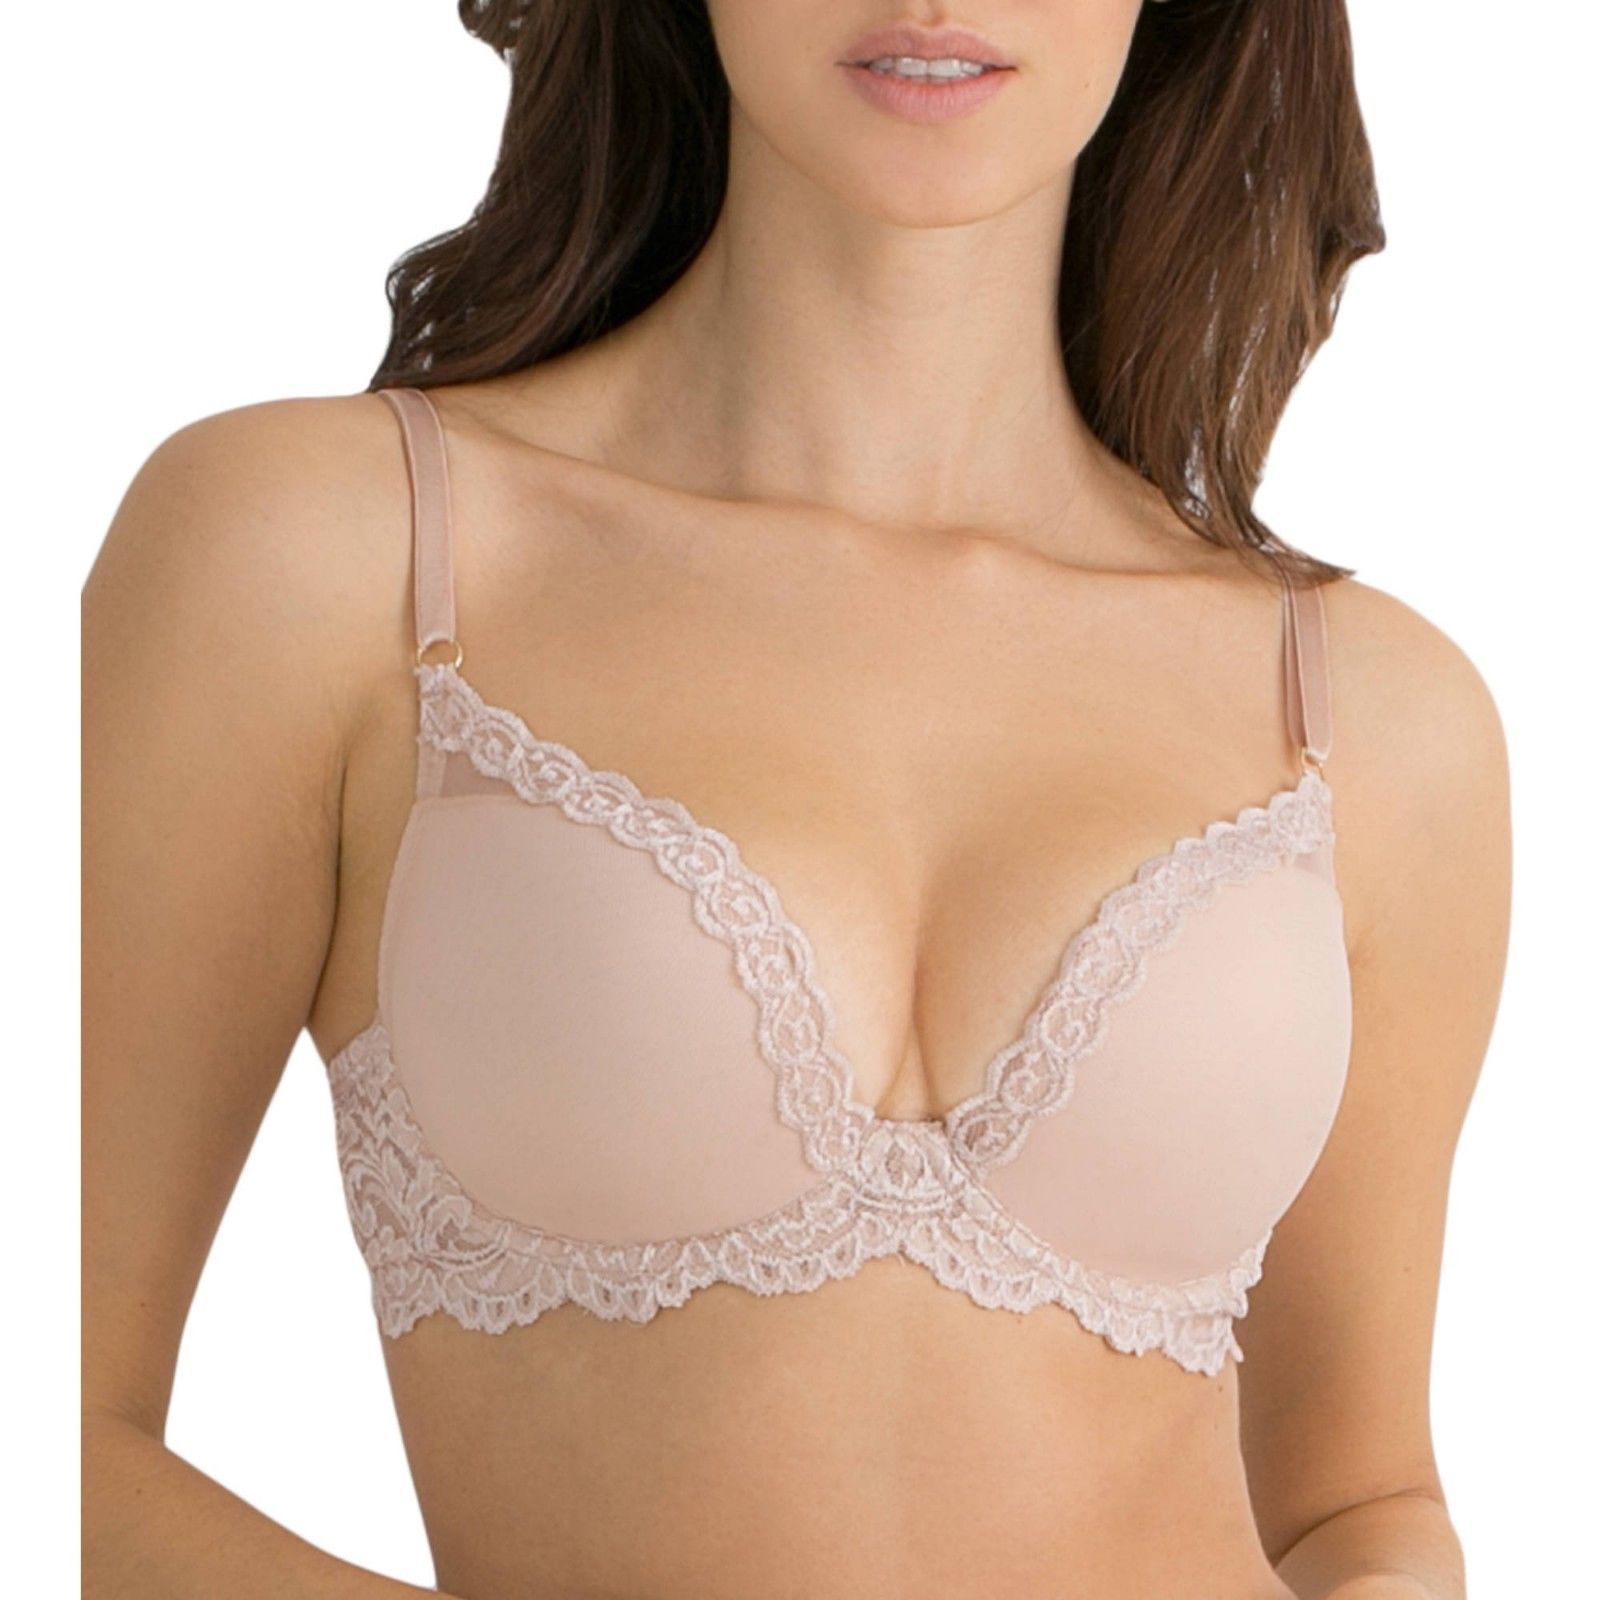 d4774802f8 S l1600. S l1600. Previous. Smart   Sexy Light Lined Signature Lace   Mesh  Bra Buff Color Size 38C NEW